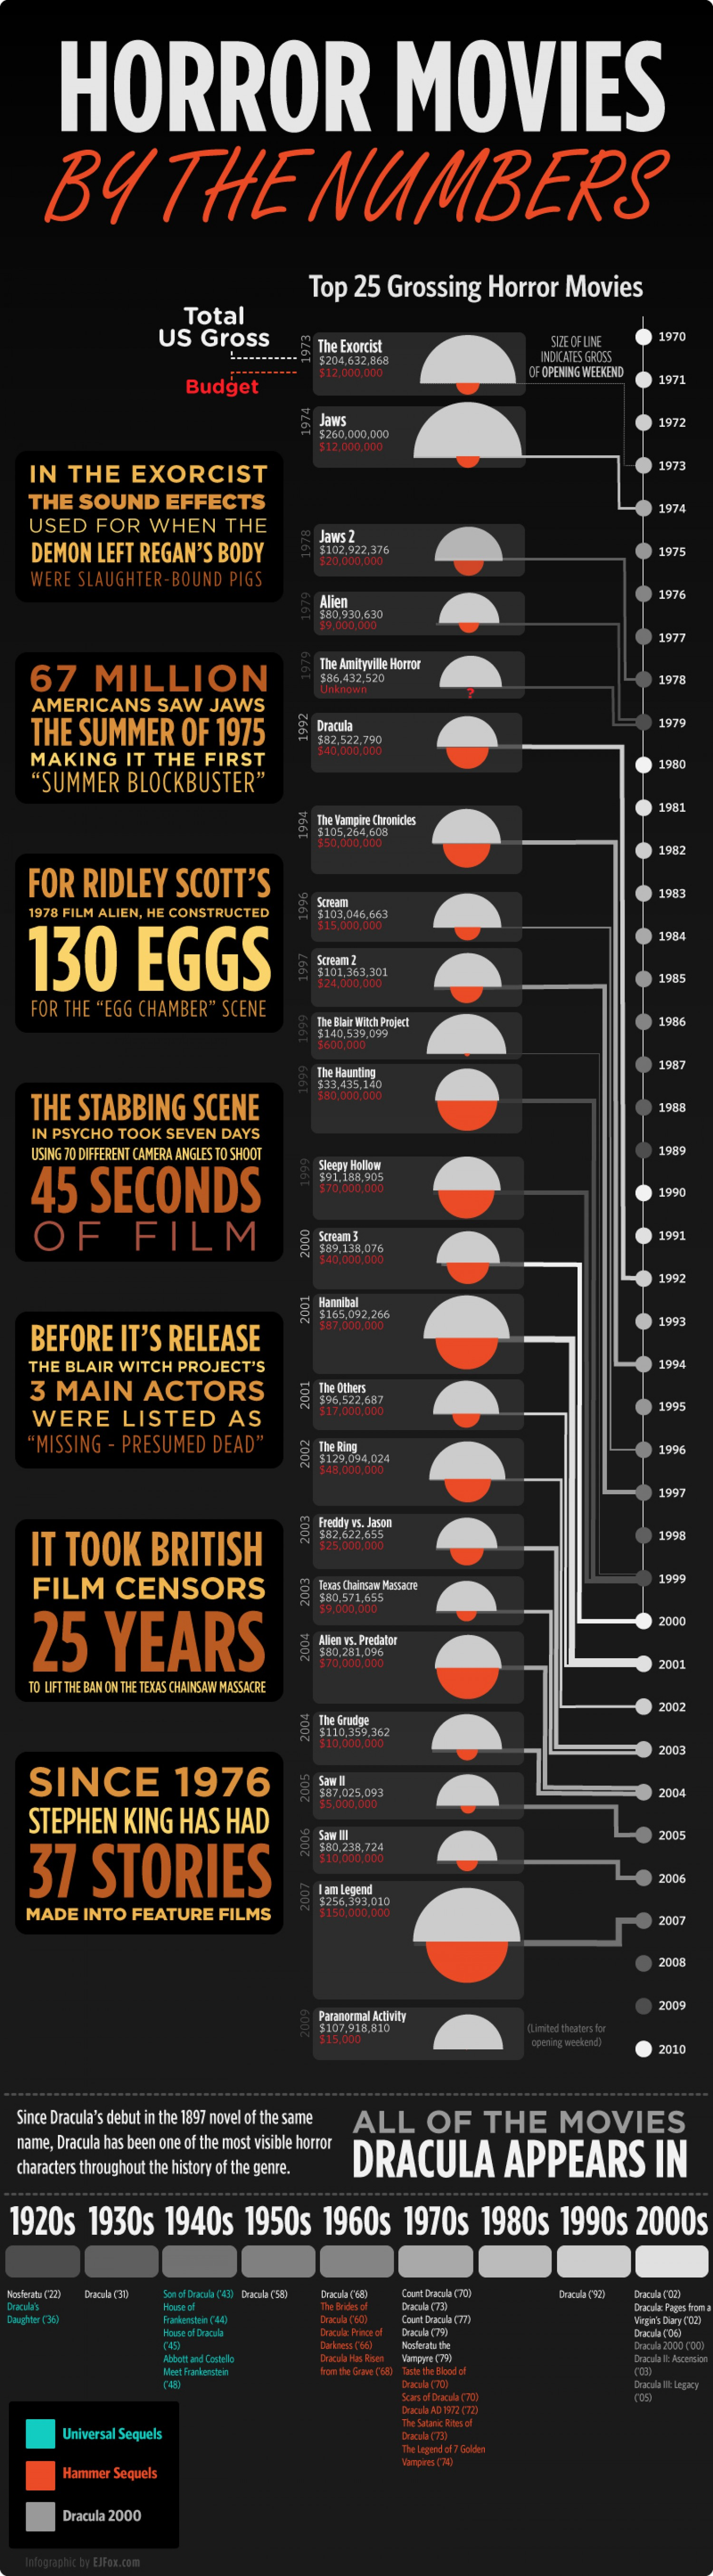 15. History of horror movies